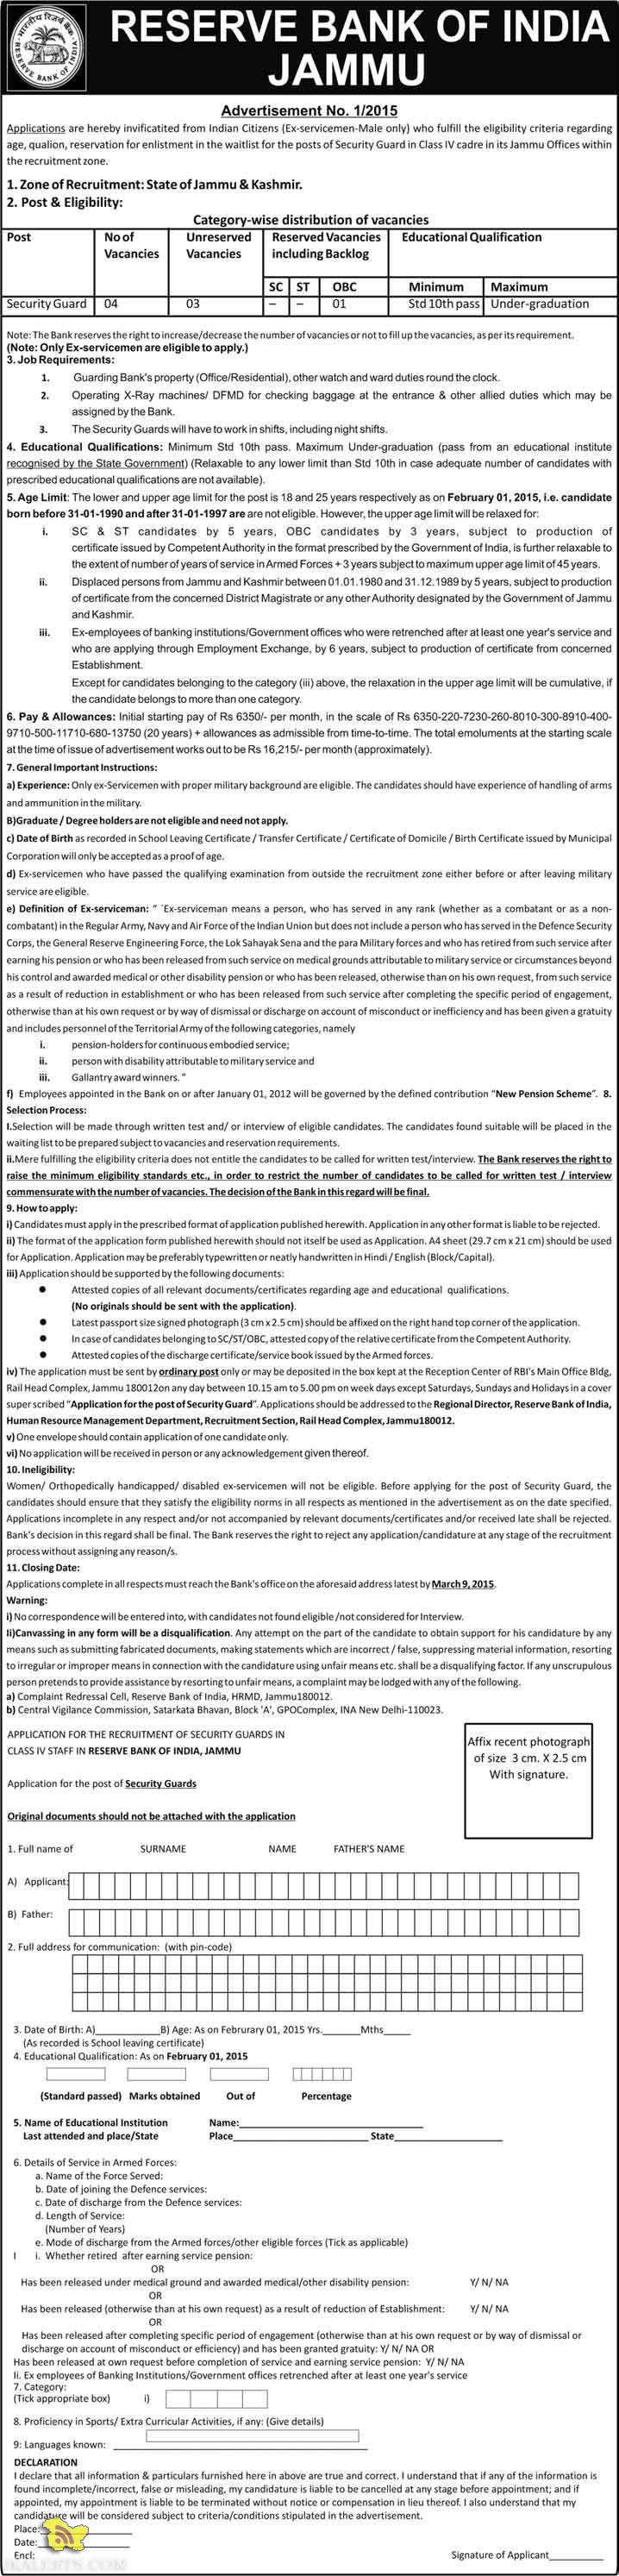 Jobs in Reserve Bank of India ,Security Guard in Class IV cadre